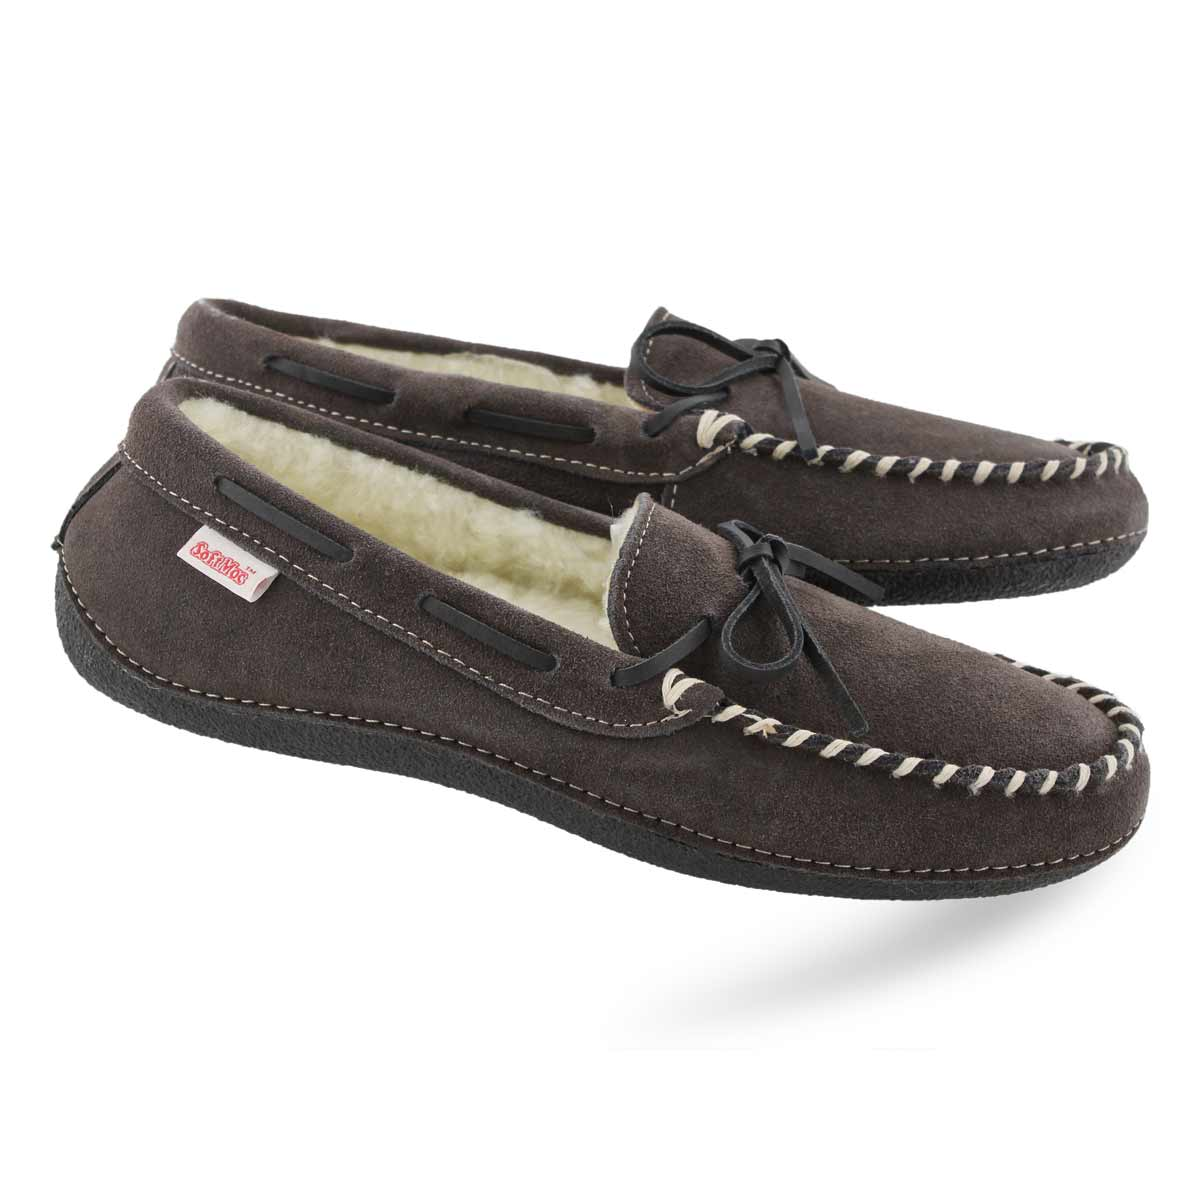 Mns Greg grey fleece lined moc